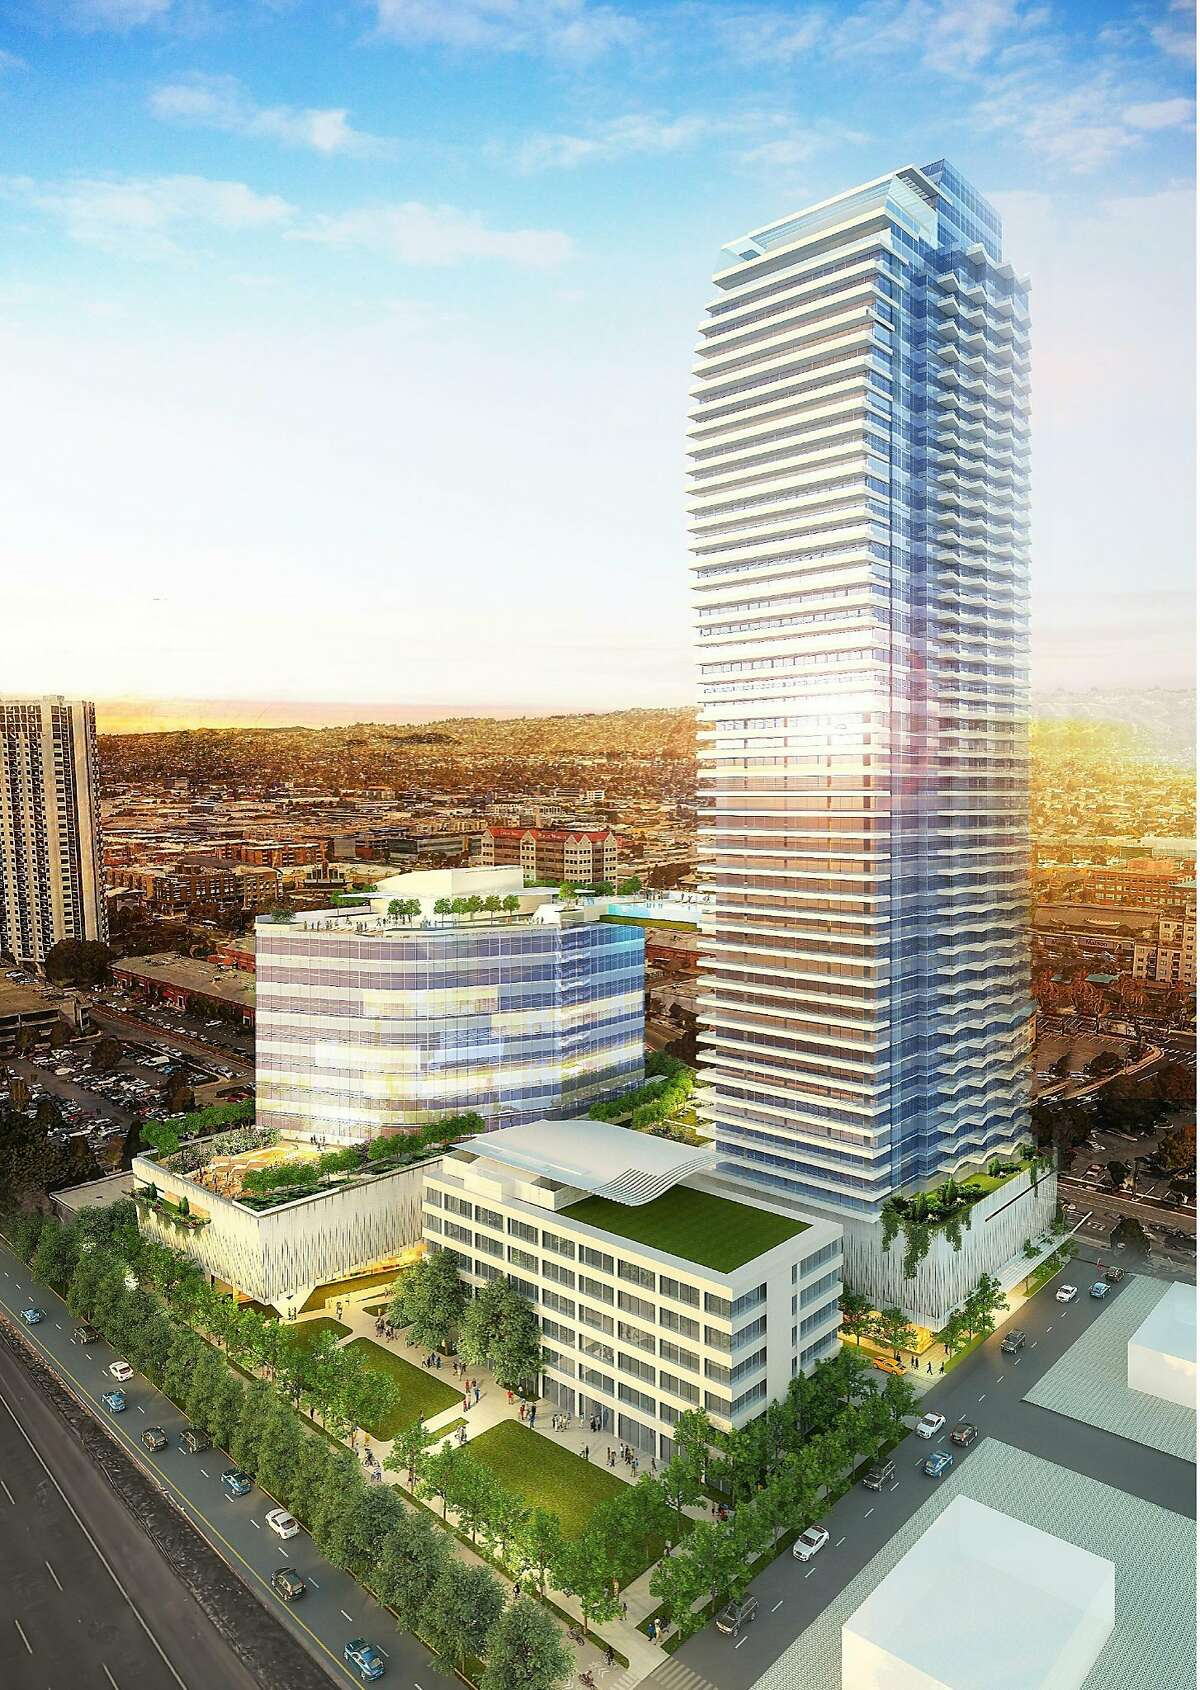 Emeryville is proposing a 54-story residential high-rise tower off Powell Street exit on Interstate 80, which would be the tallest building in the area and second tallest all-residential building in the western U.S.